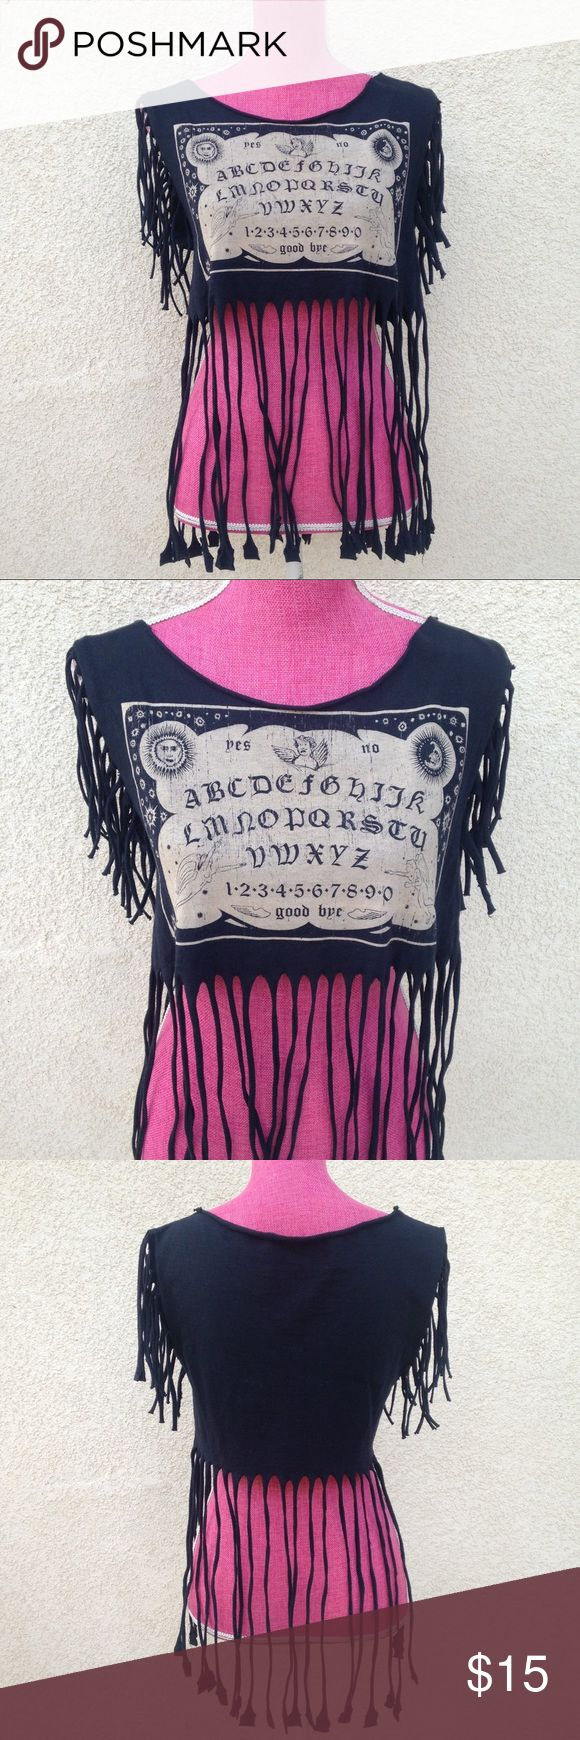 Ouija Cropped Fringe Top Ouija Cropped Fringe Top  •Women's size med/large•  •Great Top for a festival or concert!•  •Looks best with high waisted shorts•   •Hand-cut Fringe and Crop•   ✨Every offer is considered!✨ Tops Crop Tops